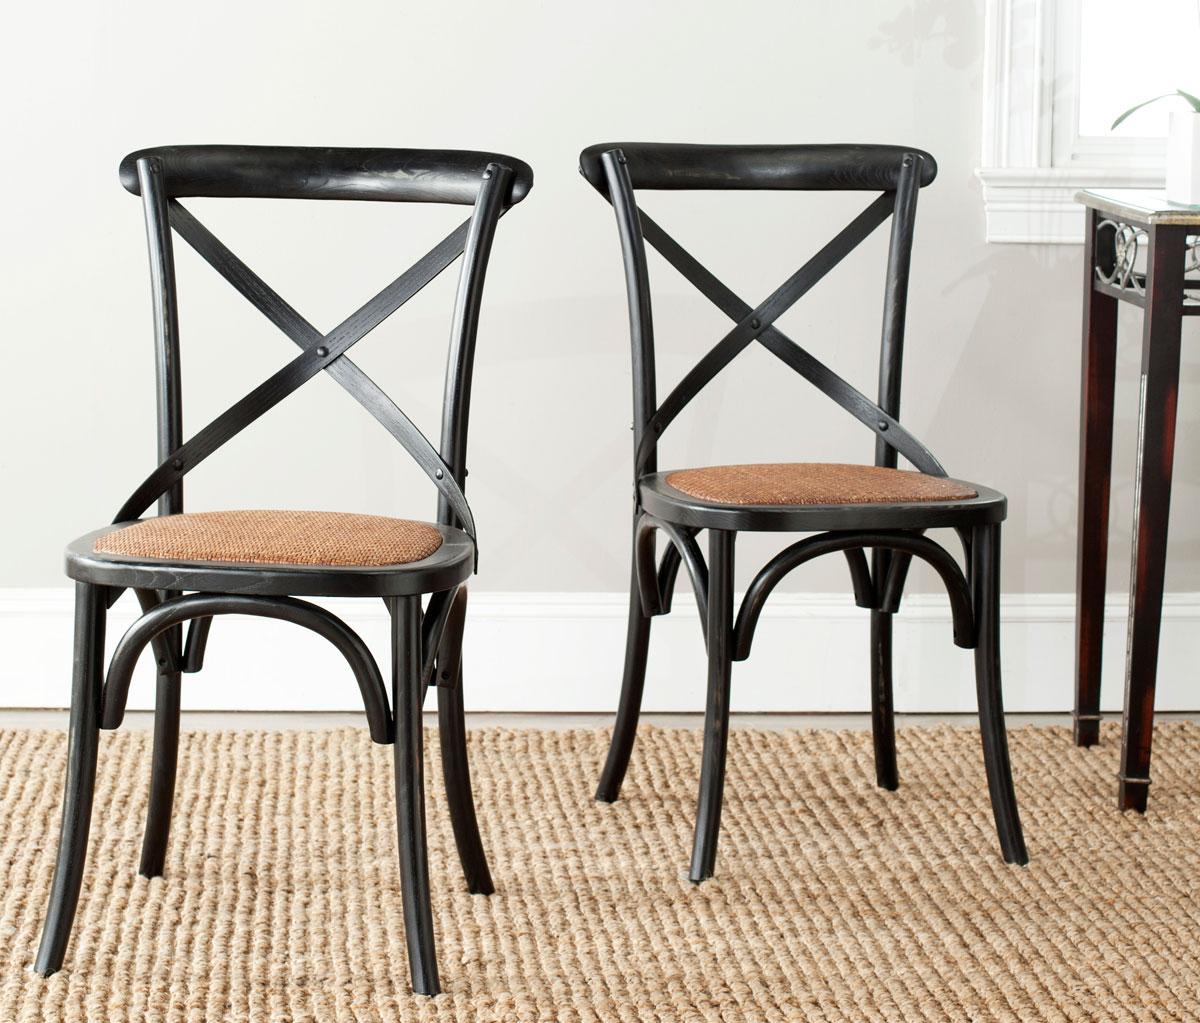 safavieh sinclair ring side chair best potty for tall boy amh9500b set2 dining chairs furniture by